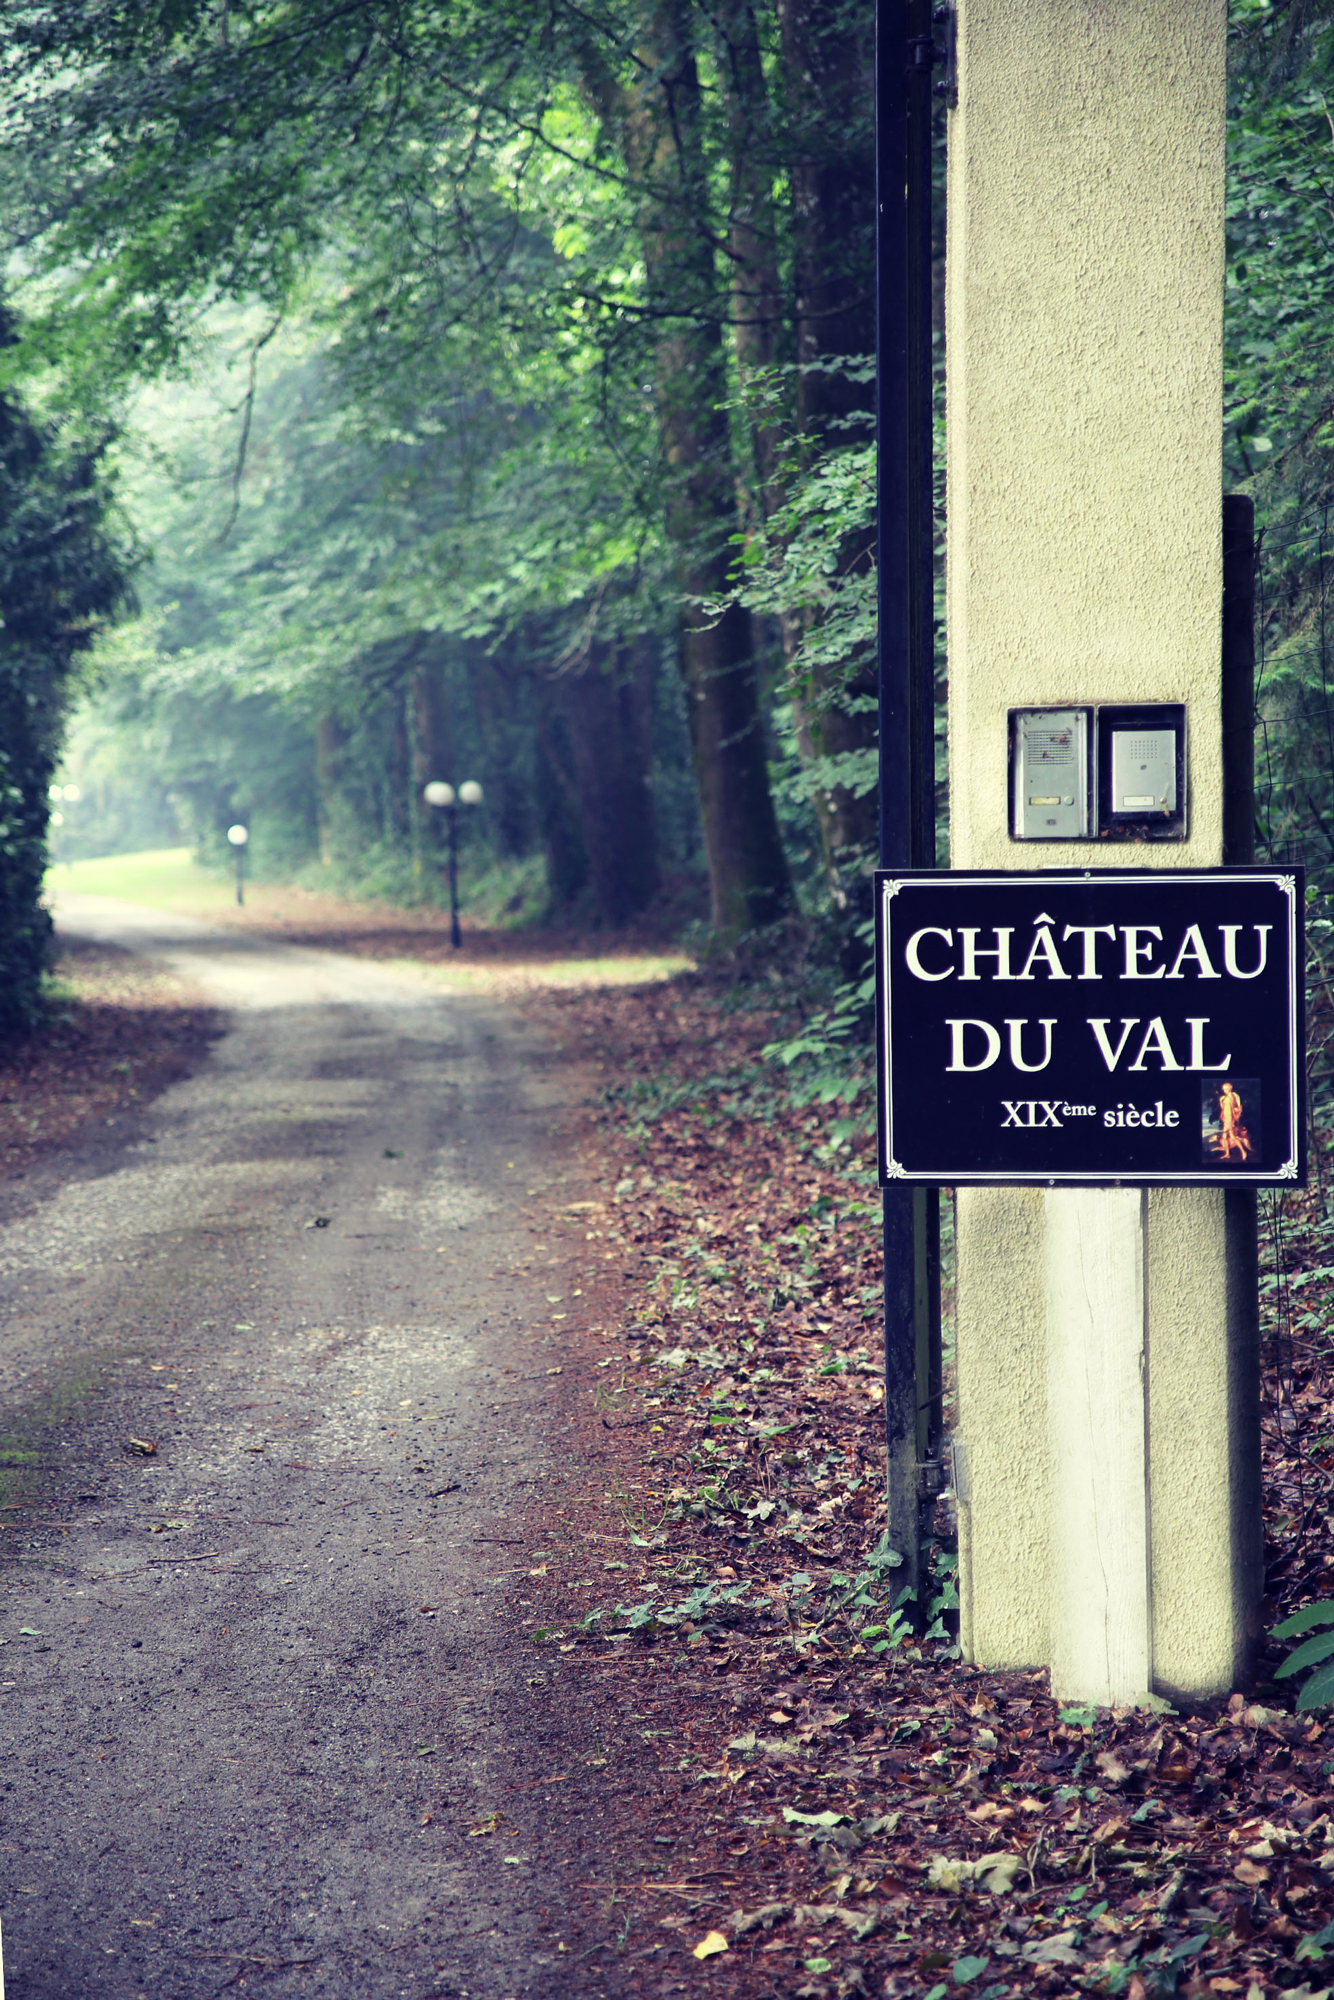 Chateau gate